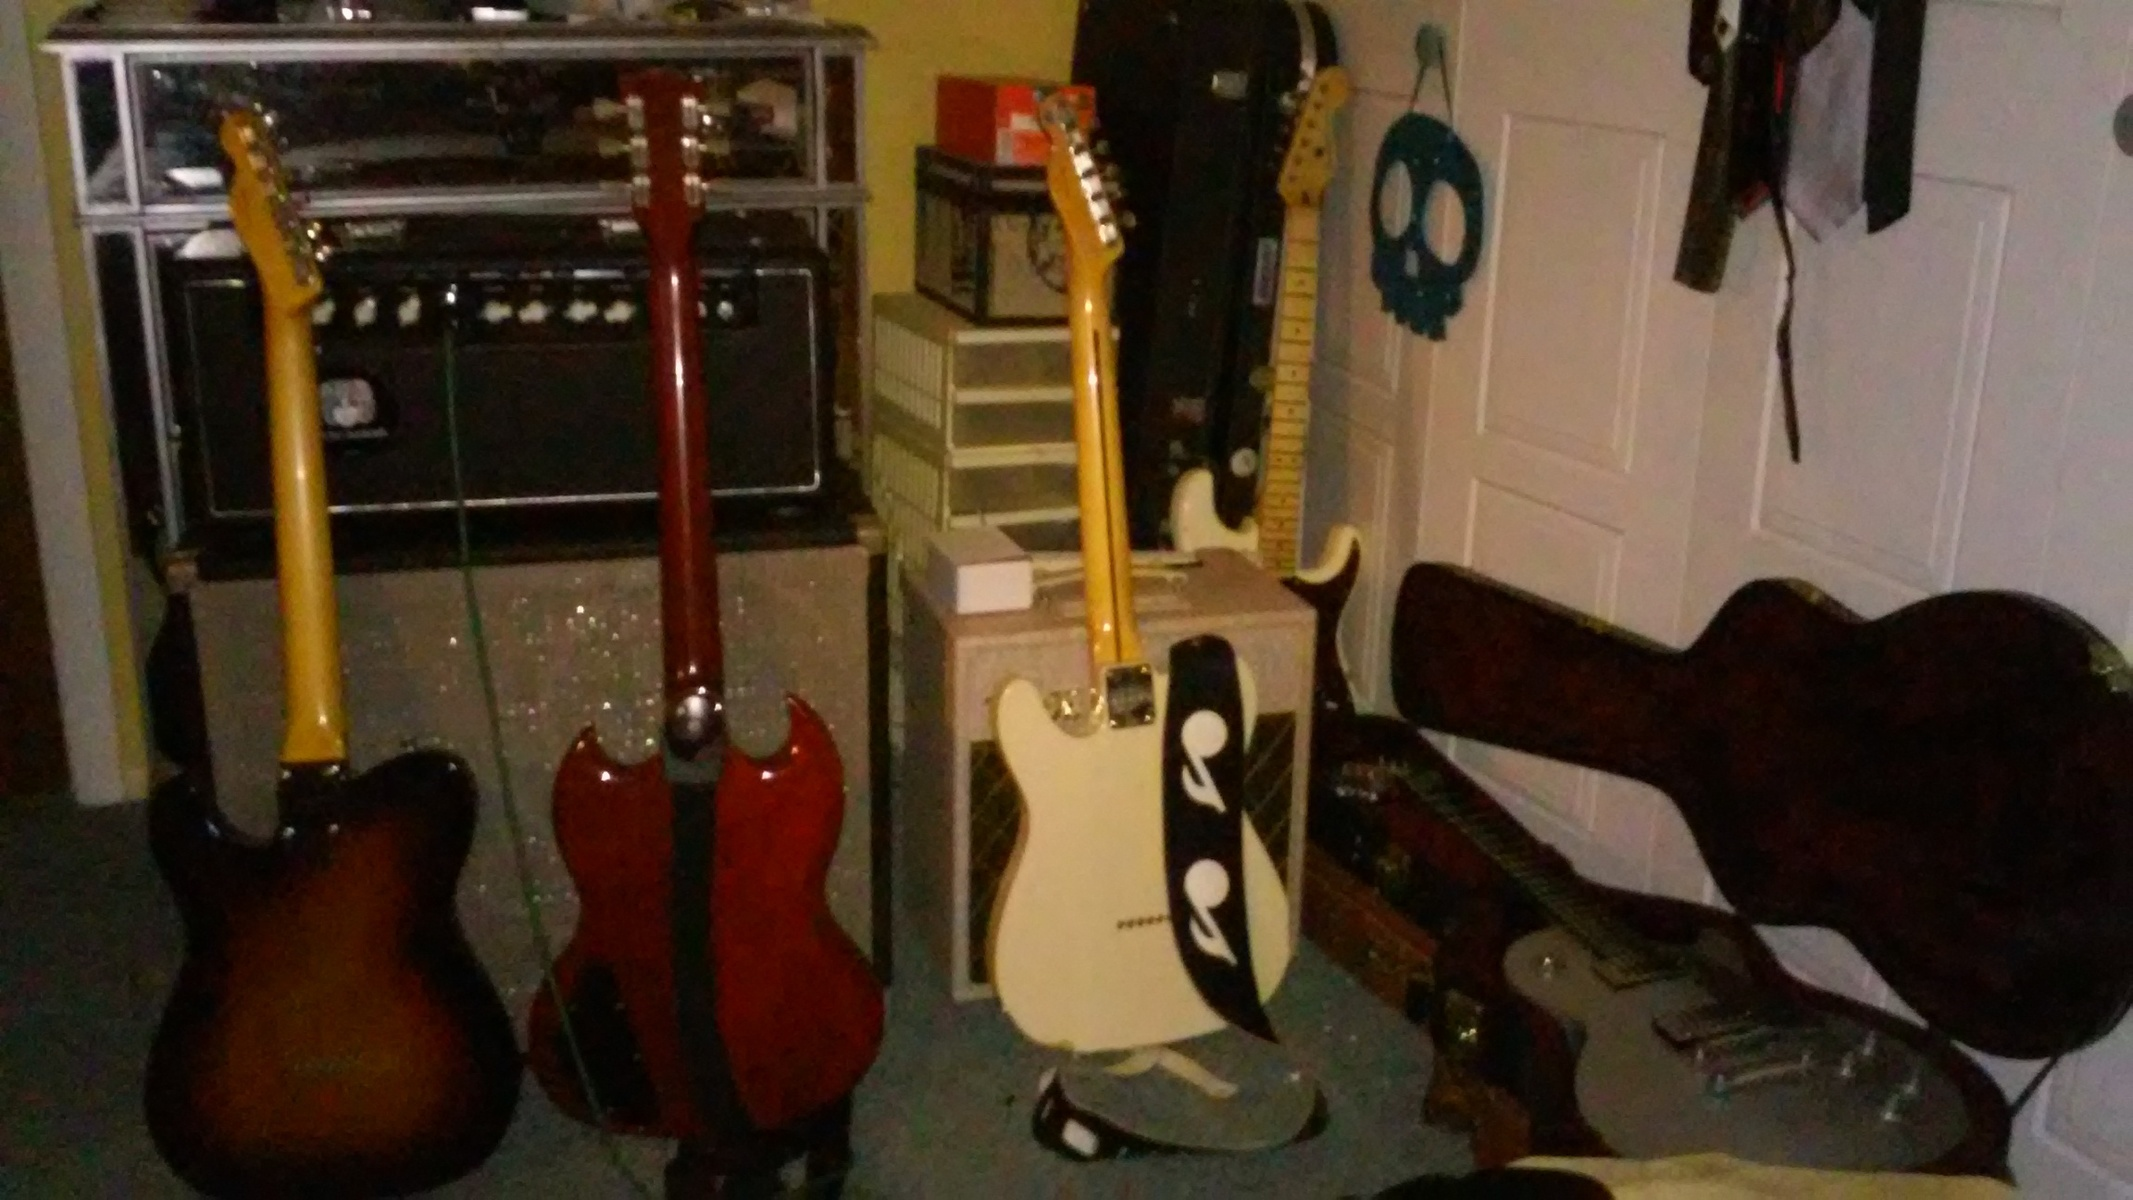 jimmarchi1's music gear photo containing Gibson SG Standard Electric Guitar, Fender Esquire, Fender Stratocaster Electric Guitar, Vox AC4HW1, Ceriatone Dizzy 30, Super Musical Products 2x12 'Feiten style' speaker cabinet, and Gibson Les Paul Studio Platinum Limited Edition